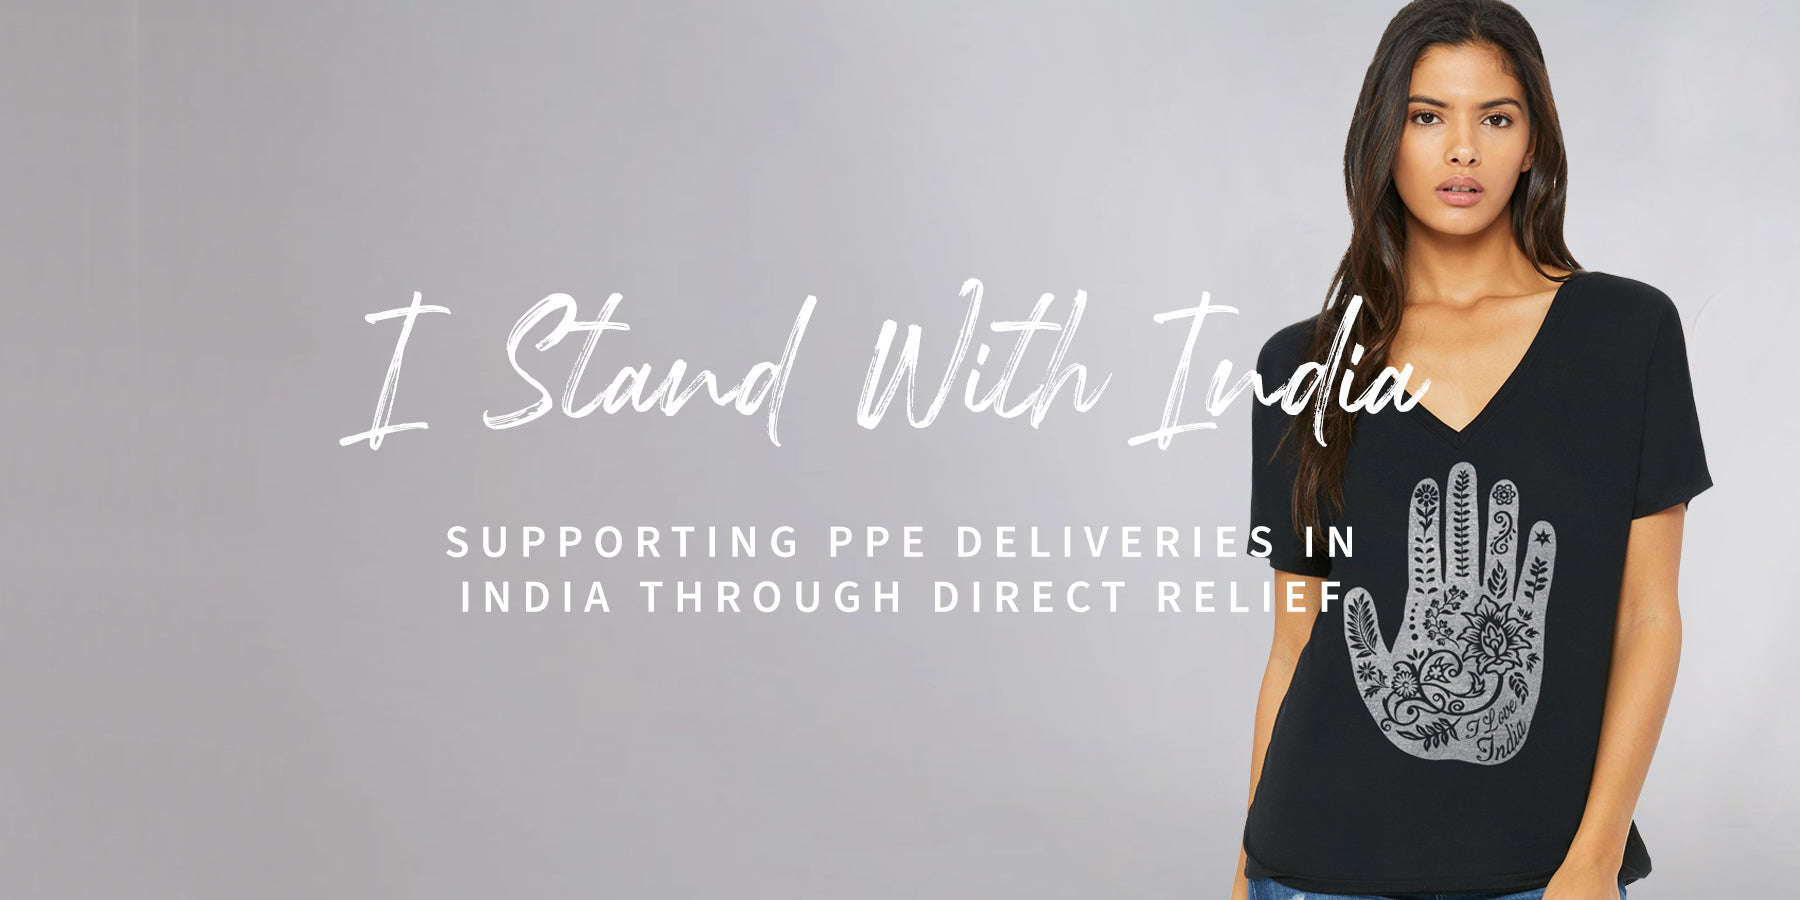 sevenly sevenly.org I stand with India for PPE personal protective equipment